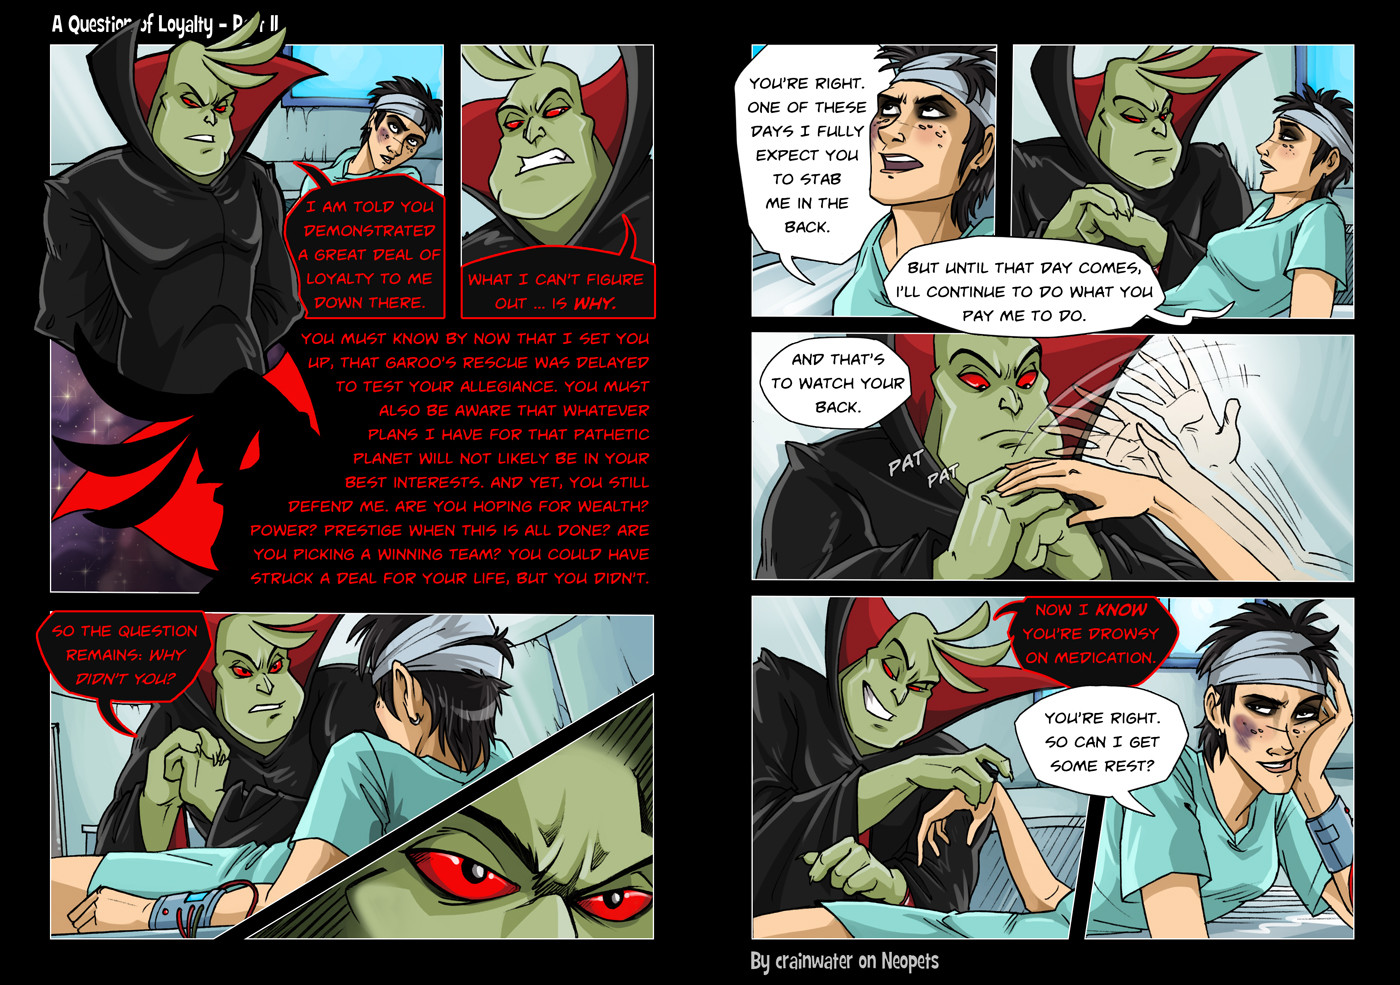 A Question of Loyalty: Page 11 (2013)